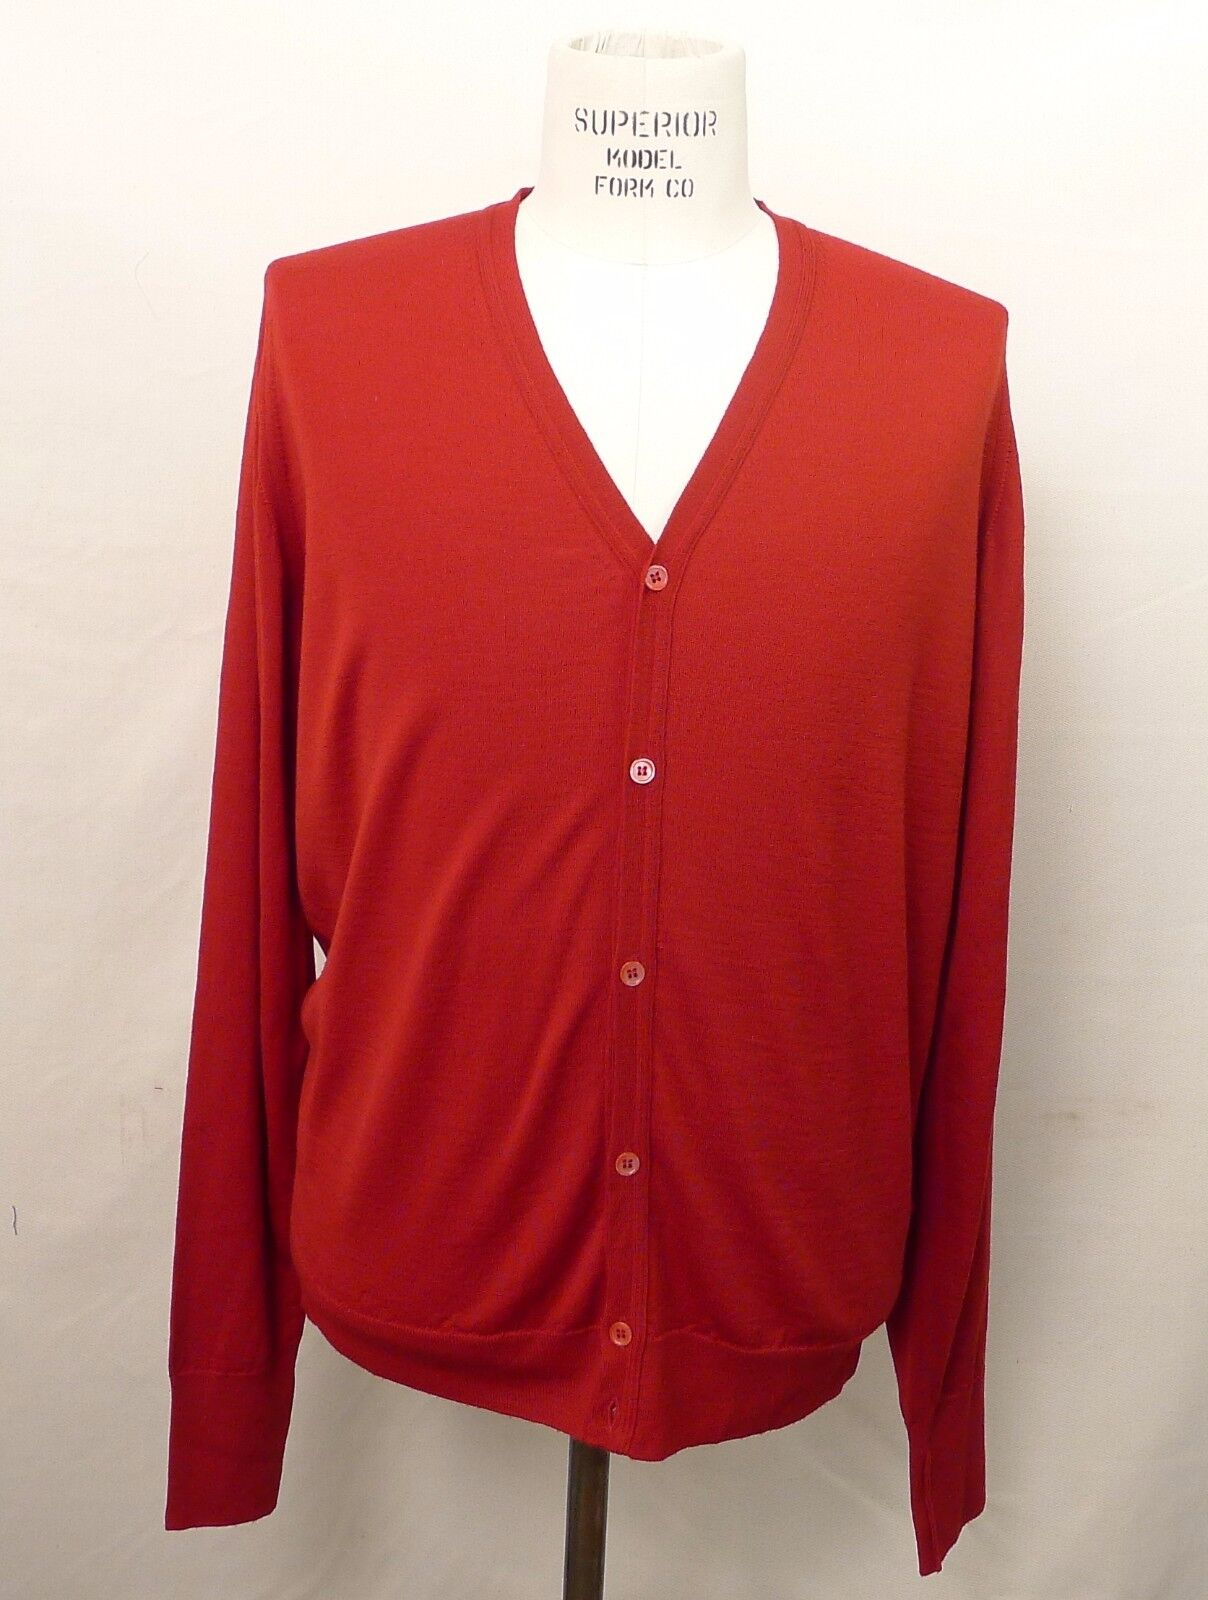 John Smedley Cardigan Sweater Made in England NWT (Groß)